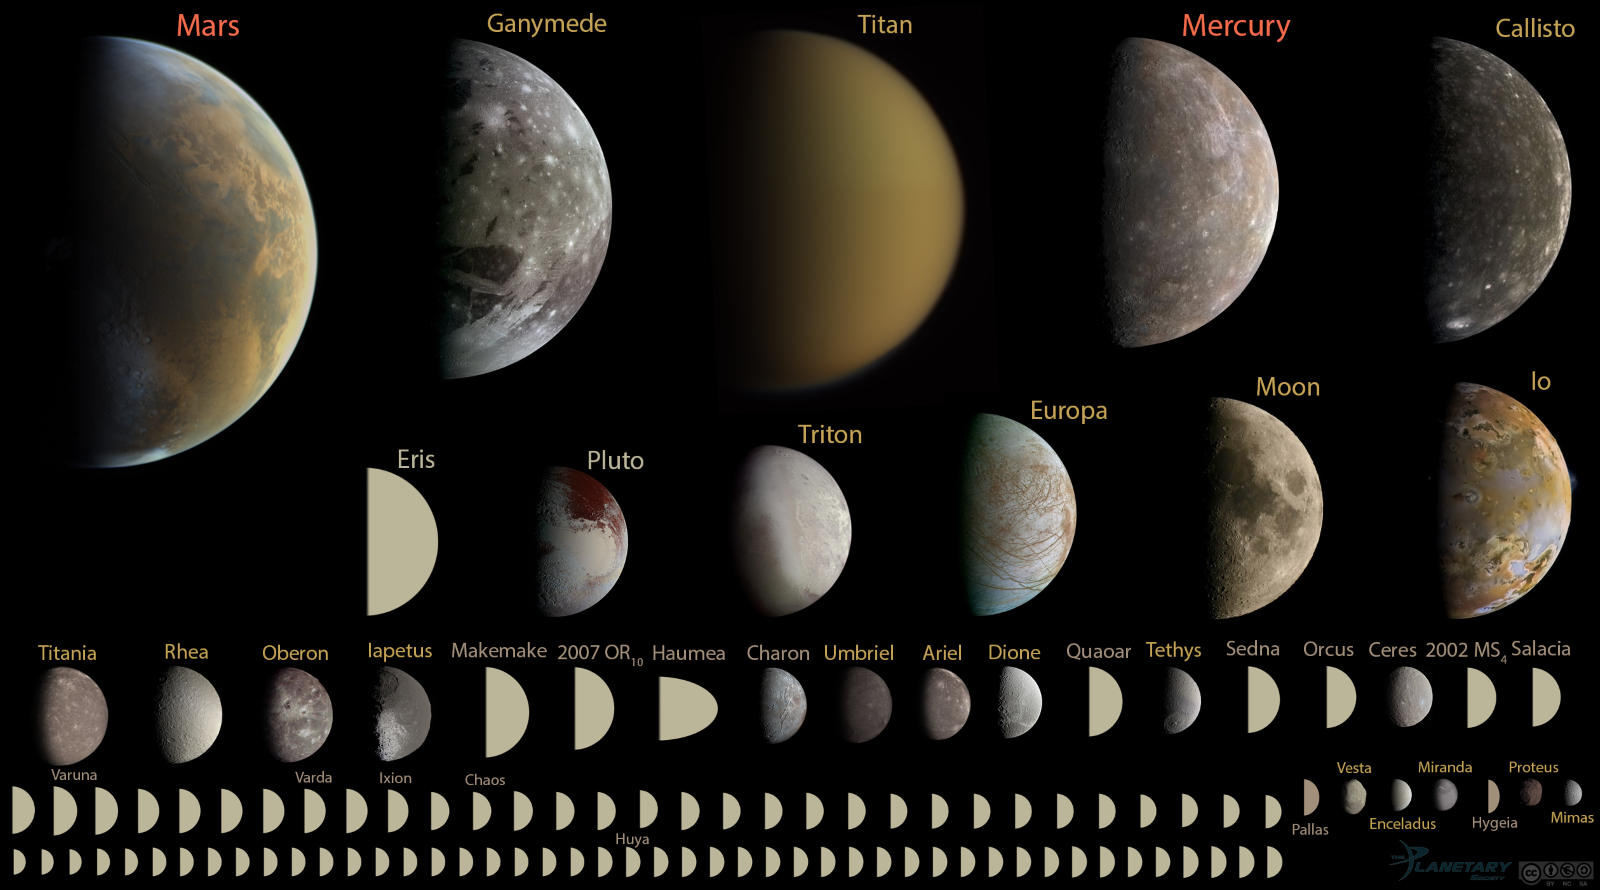 Figure 1. Every discovered 'planet' in our Solar System under 10,000 km in diameter, to scale.